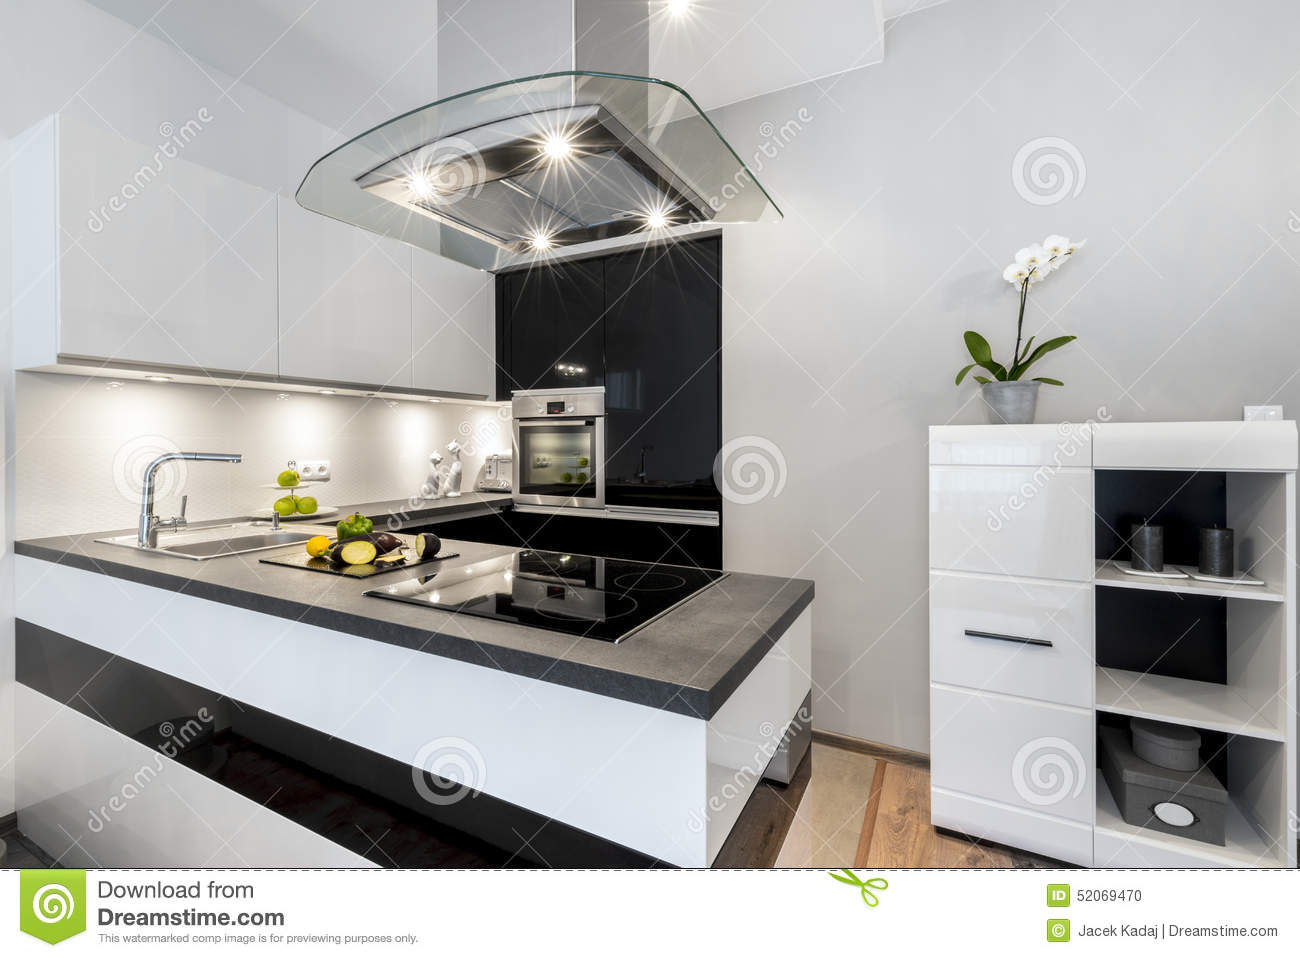 Black and white kitchen modern interior design stock photo image 52069470 - Modern interior kitchen design ...